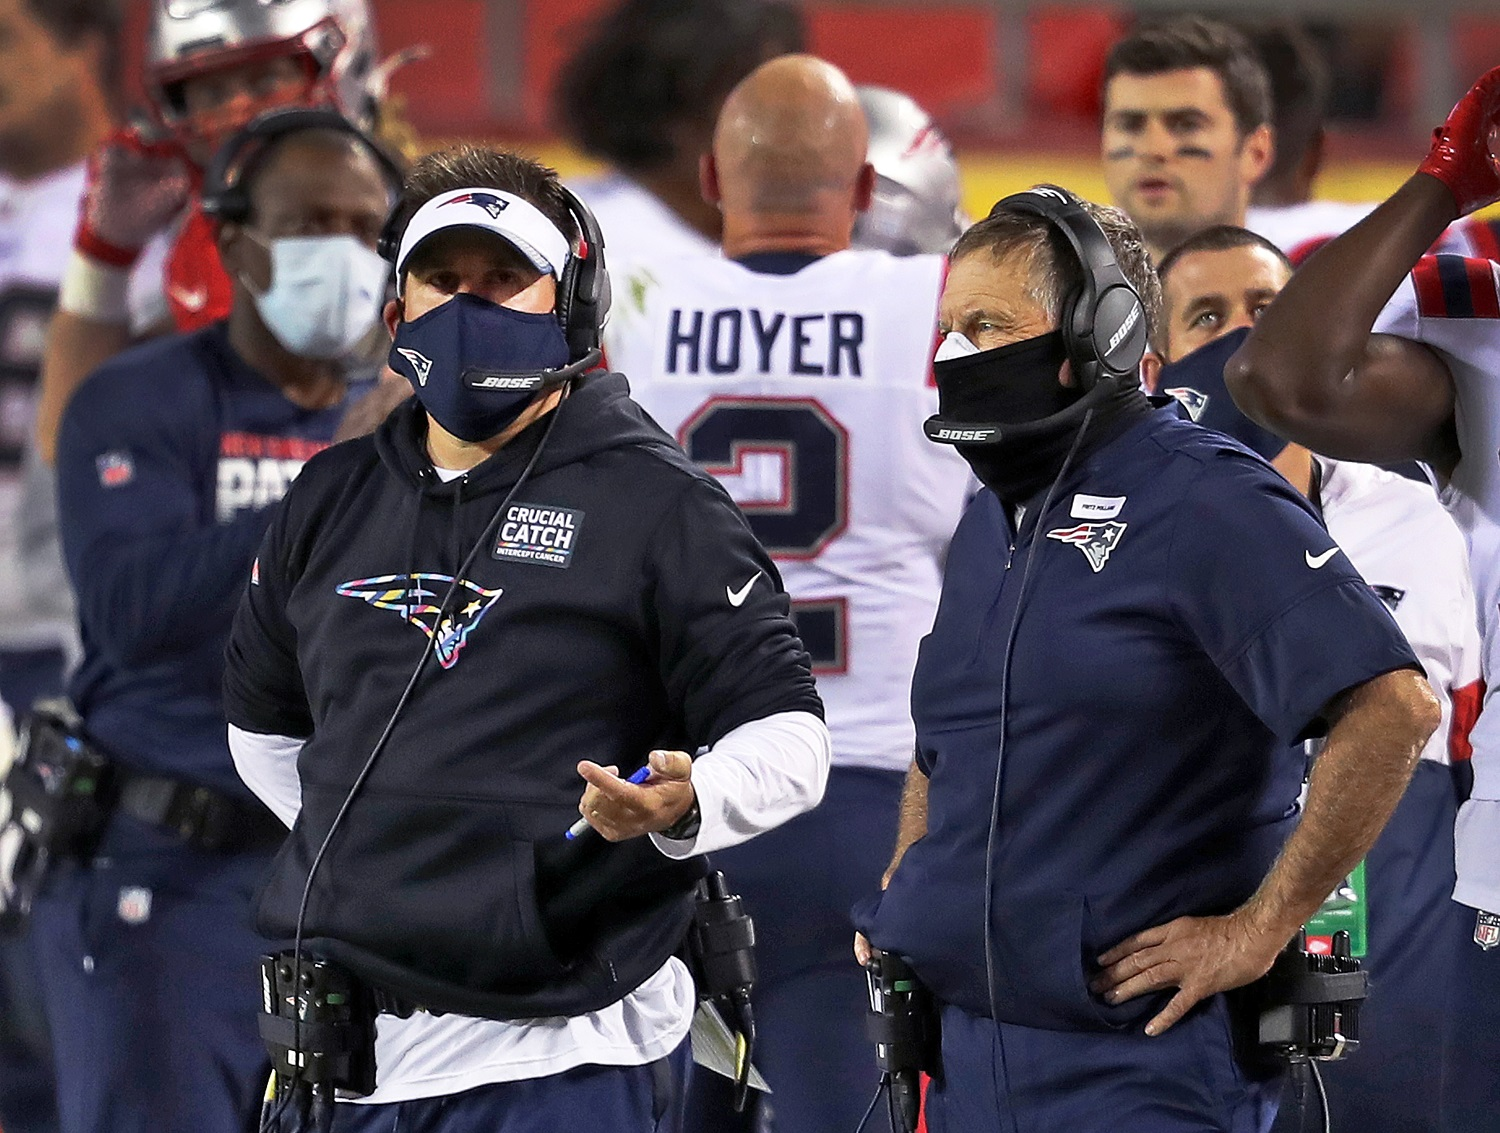 The New England Patriots just passed an important COVID-19 test ahead of their matchup with the Denver Broncos.